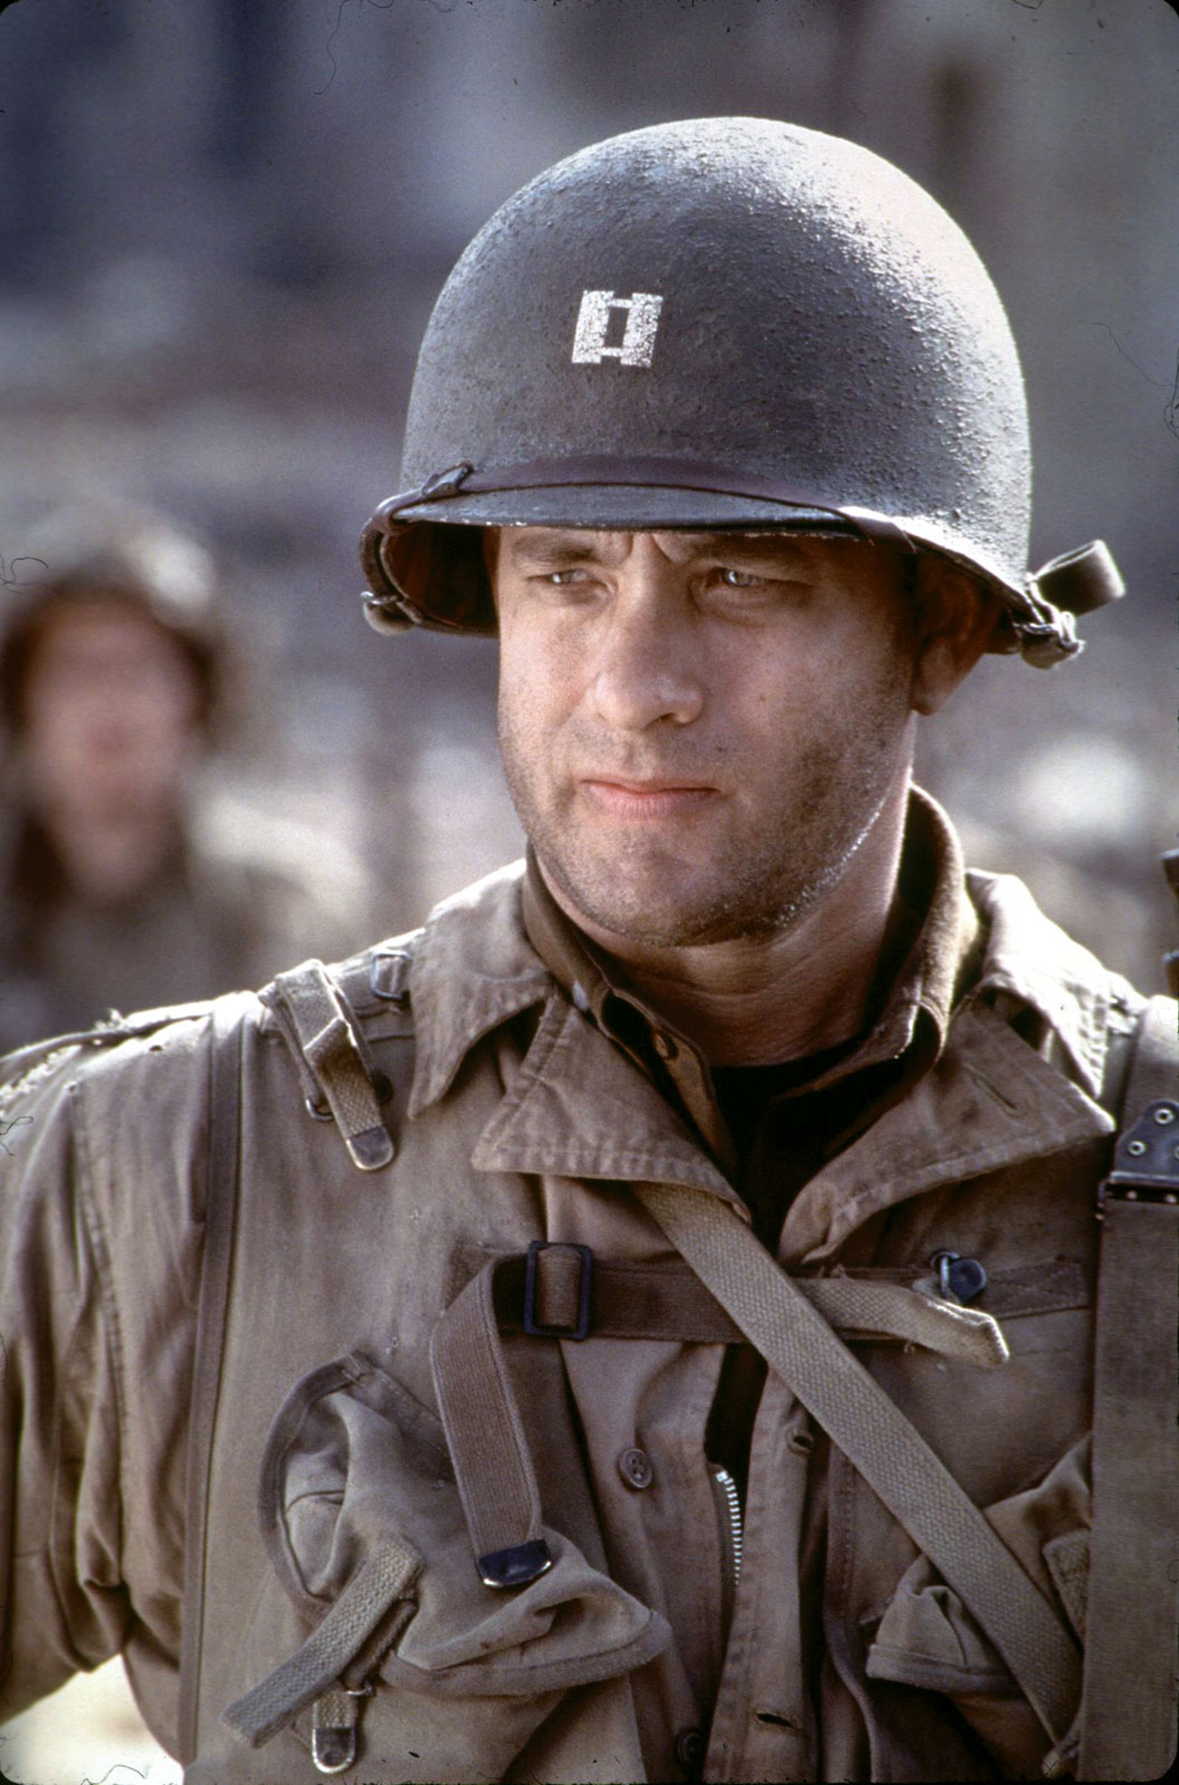 an analysis of character of captain john miller in the movie saving private ryan played by tom hanks